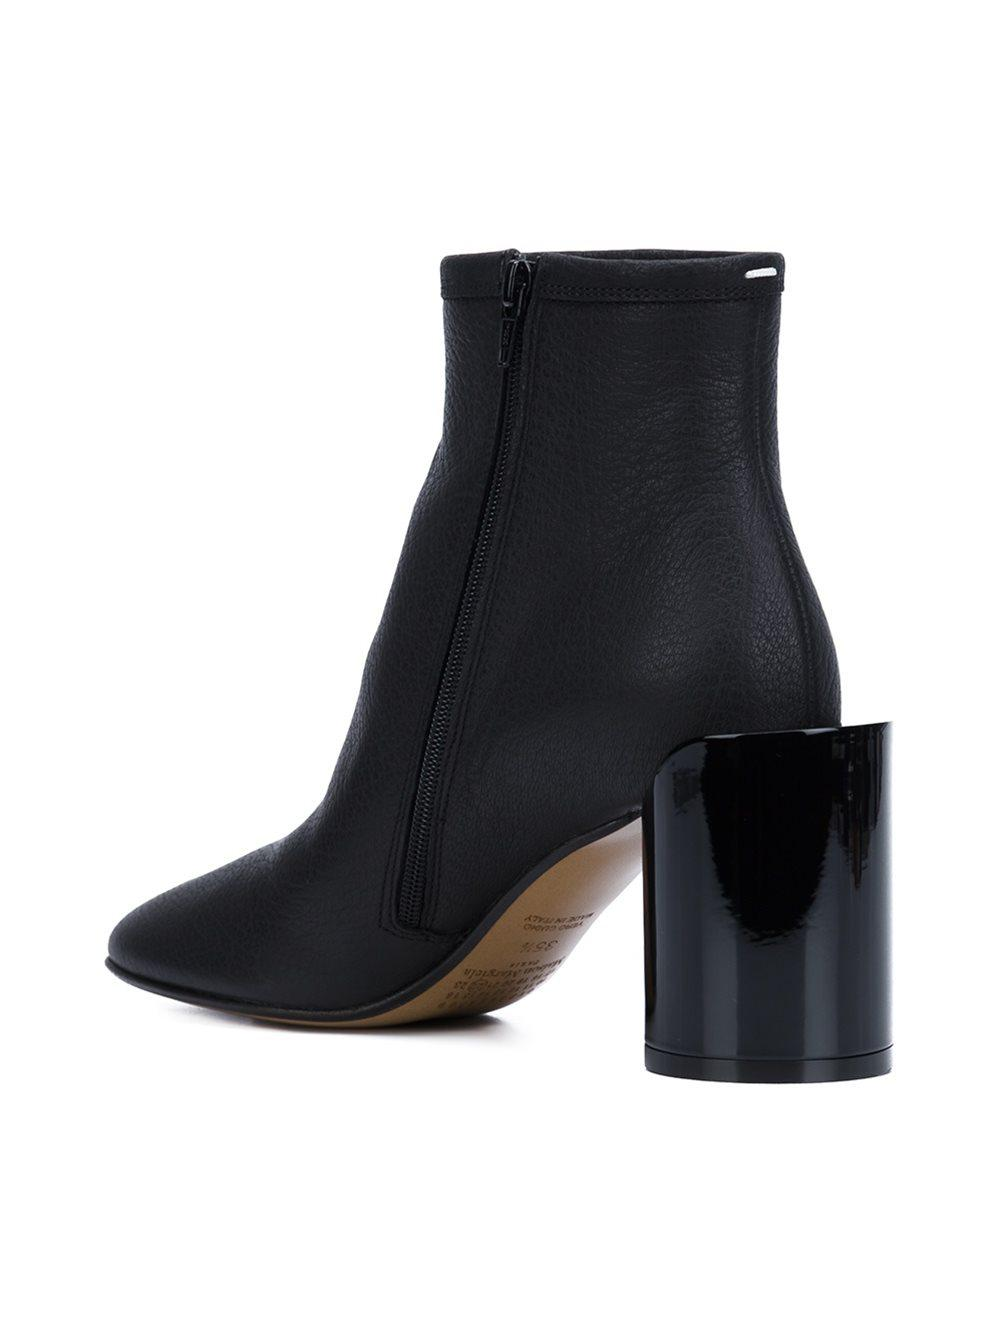 Maison Margiela Extended-Heel Leather Ankle Boots in Black